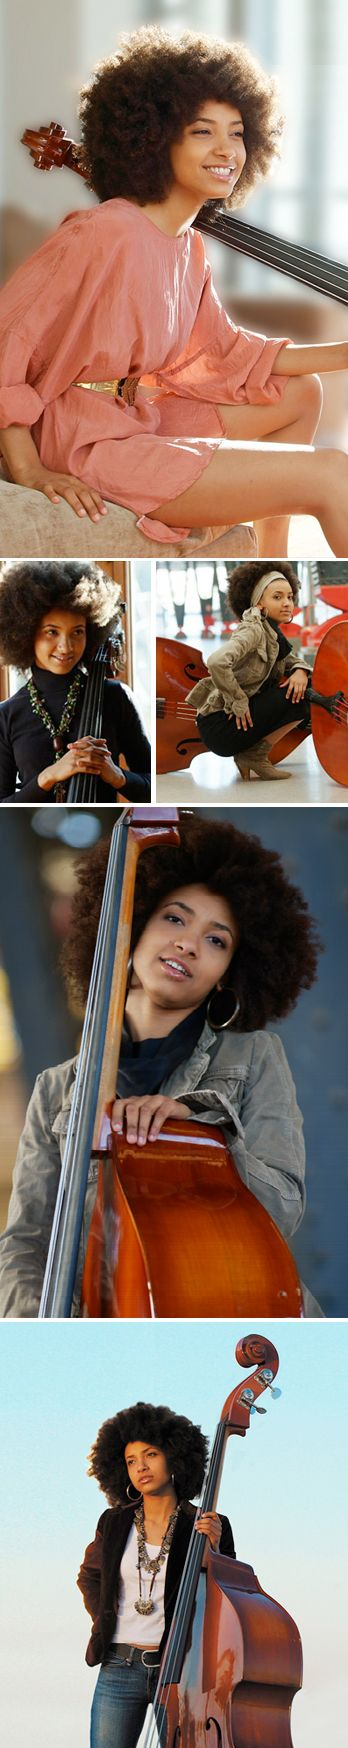 Grow and nourish your hair with steam treatments, Look at Esperanza Spalding's gorgeous afro on long natural hair! Get the same results http://www.shorthaircutsforblackwomen.com/hair-steamers-for-natural-hair/